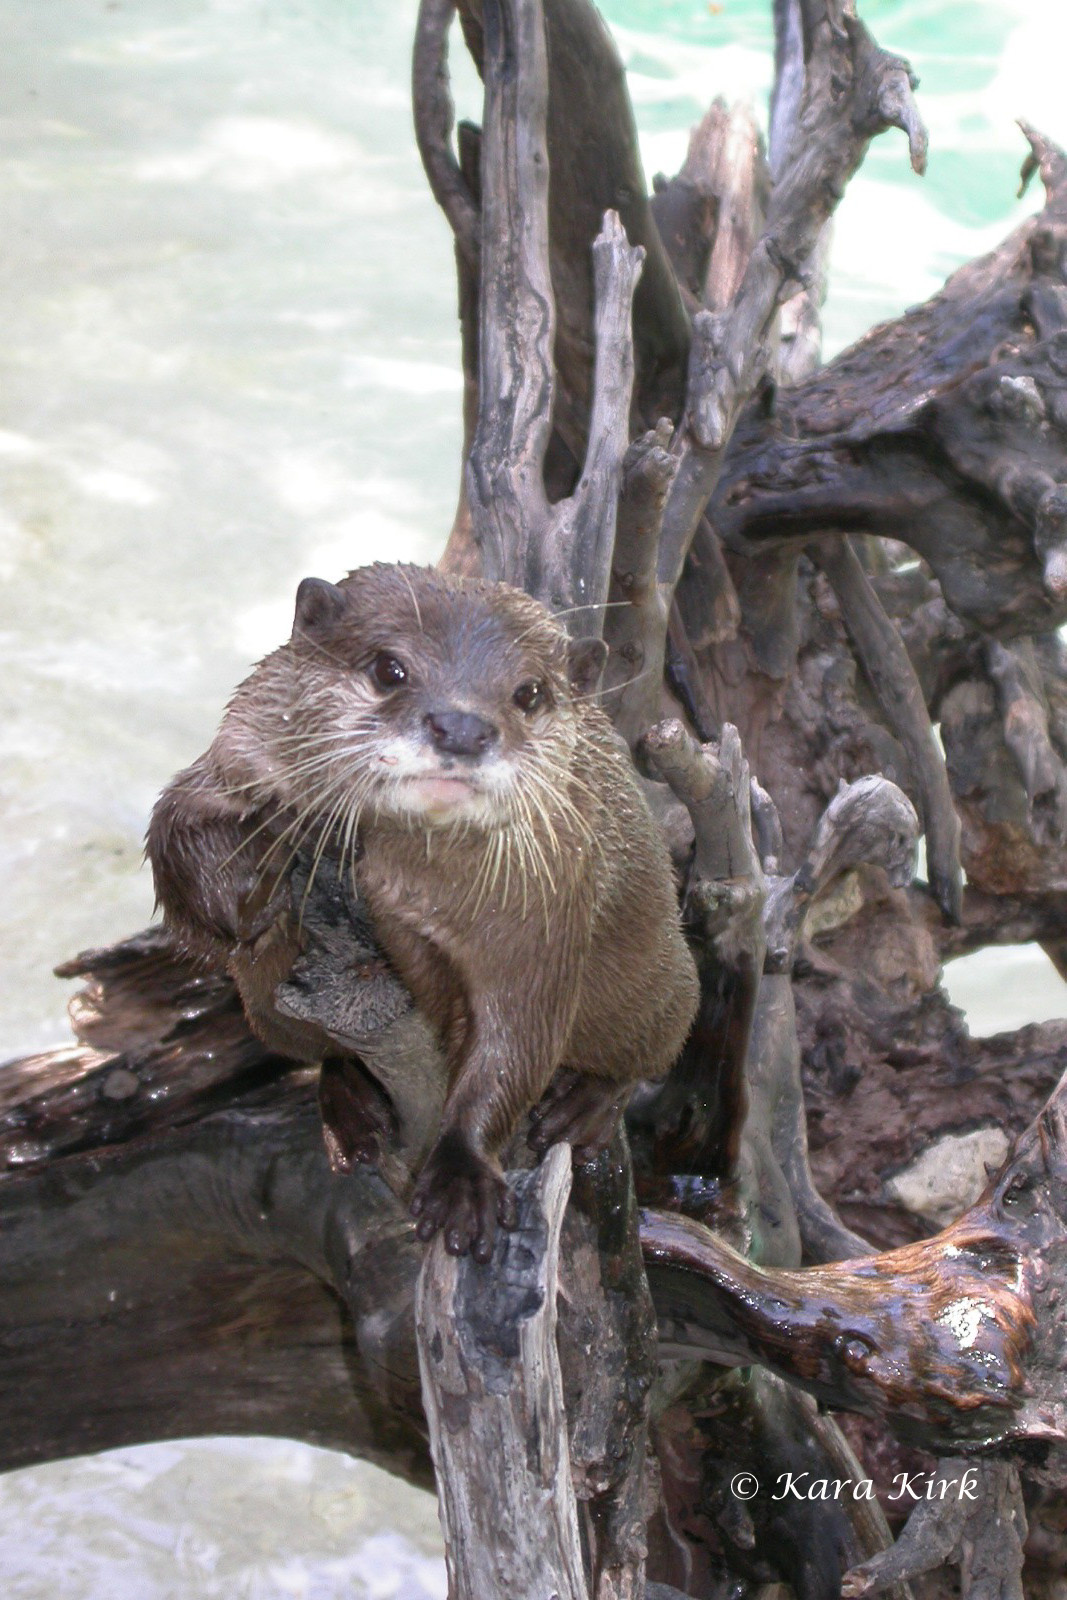 https://0201.nccdn.net/1_2/000/000/0cd/5d2/River-Otter-2-4x6-1067x1600.jpg